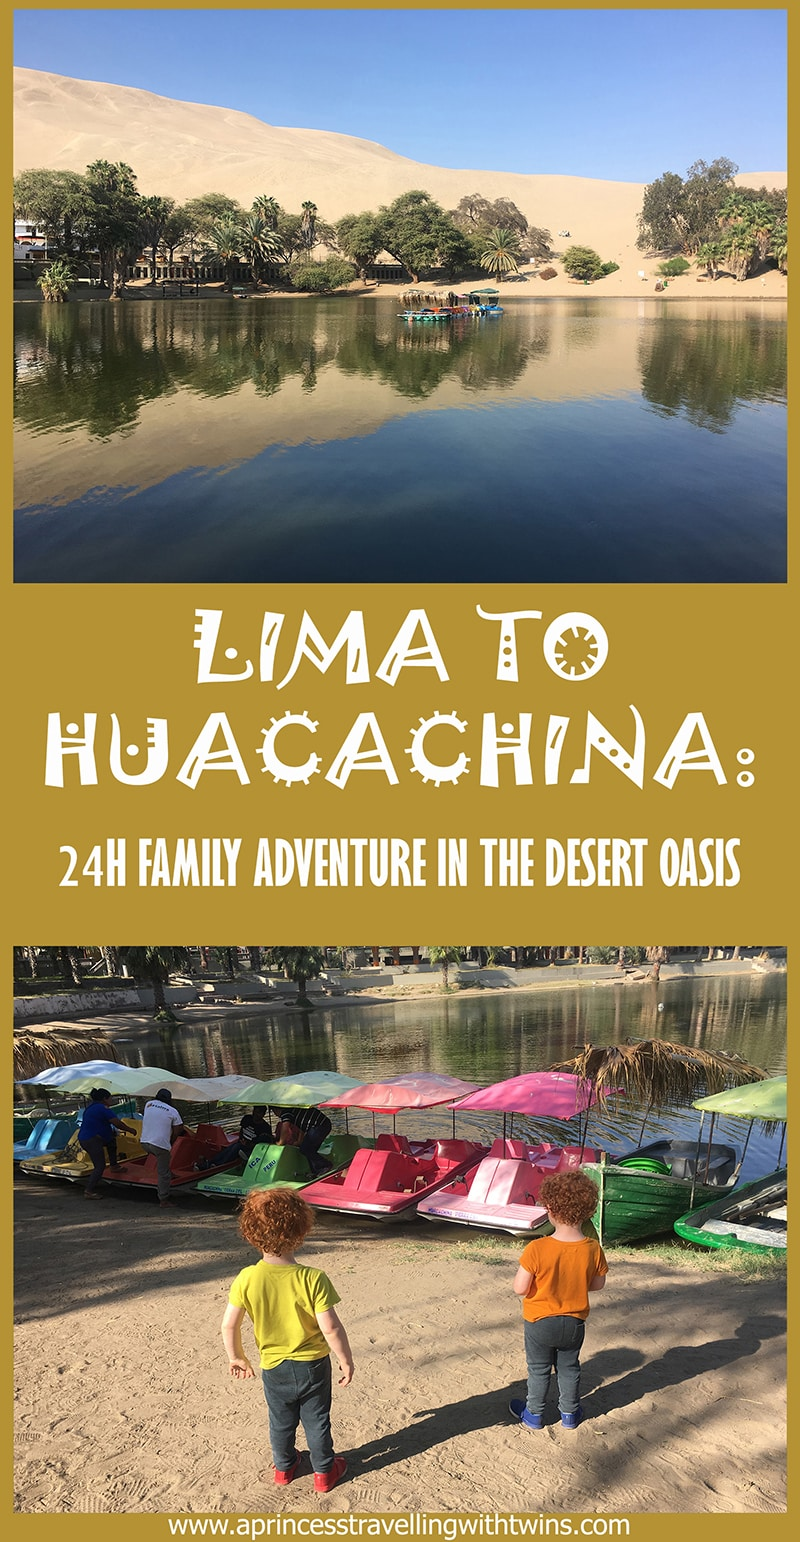 Lima to Huacachina: 24h family adventure in the desert oasis